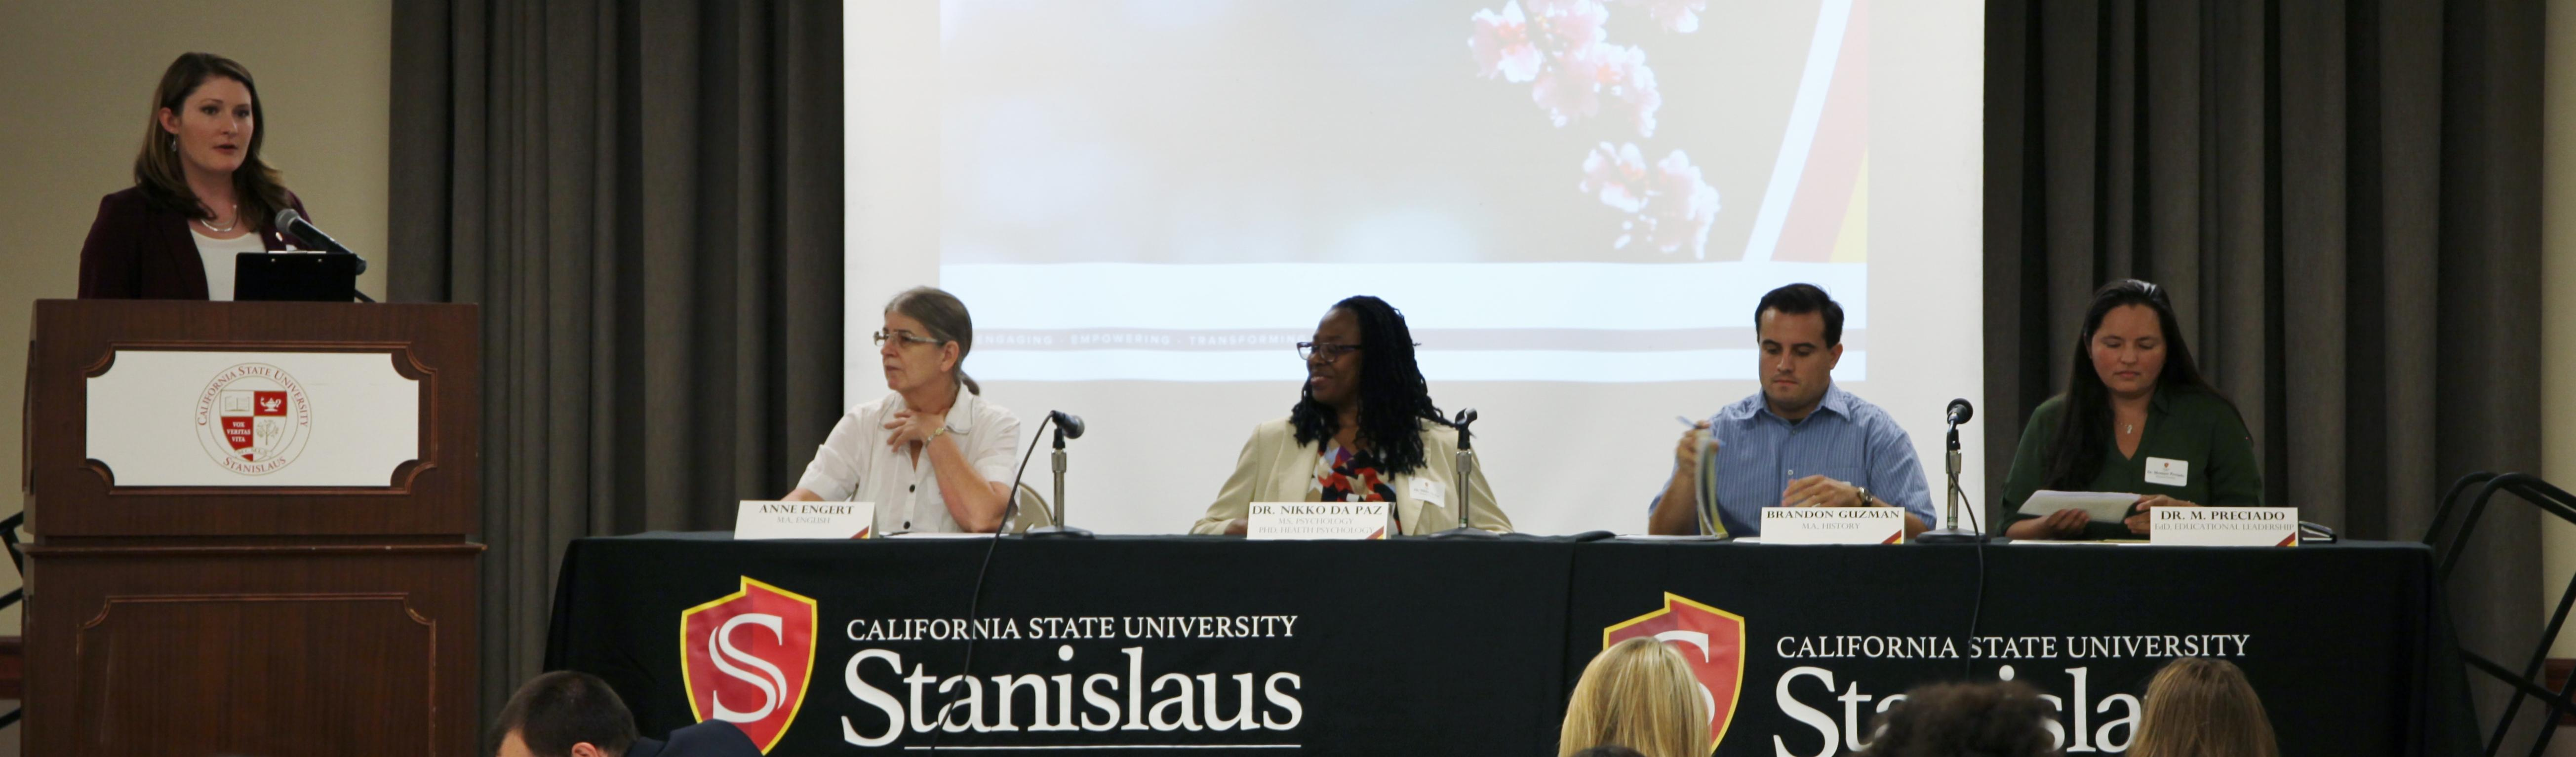 Speakers at new graduate student welcome event